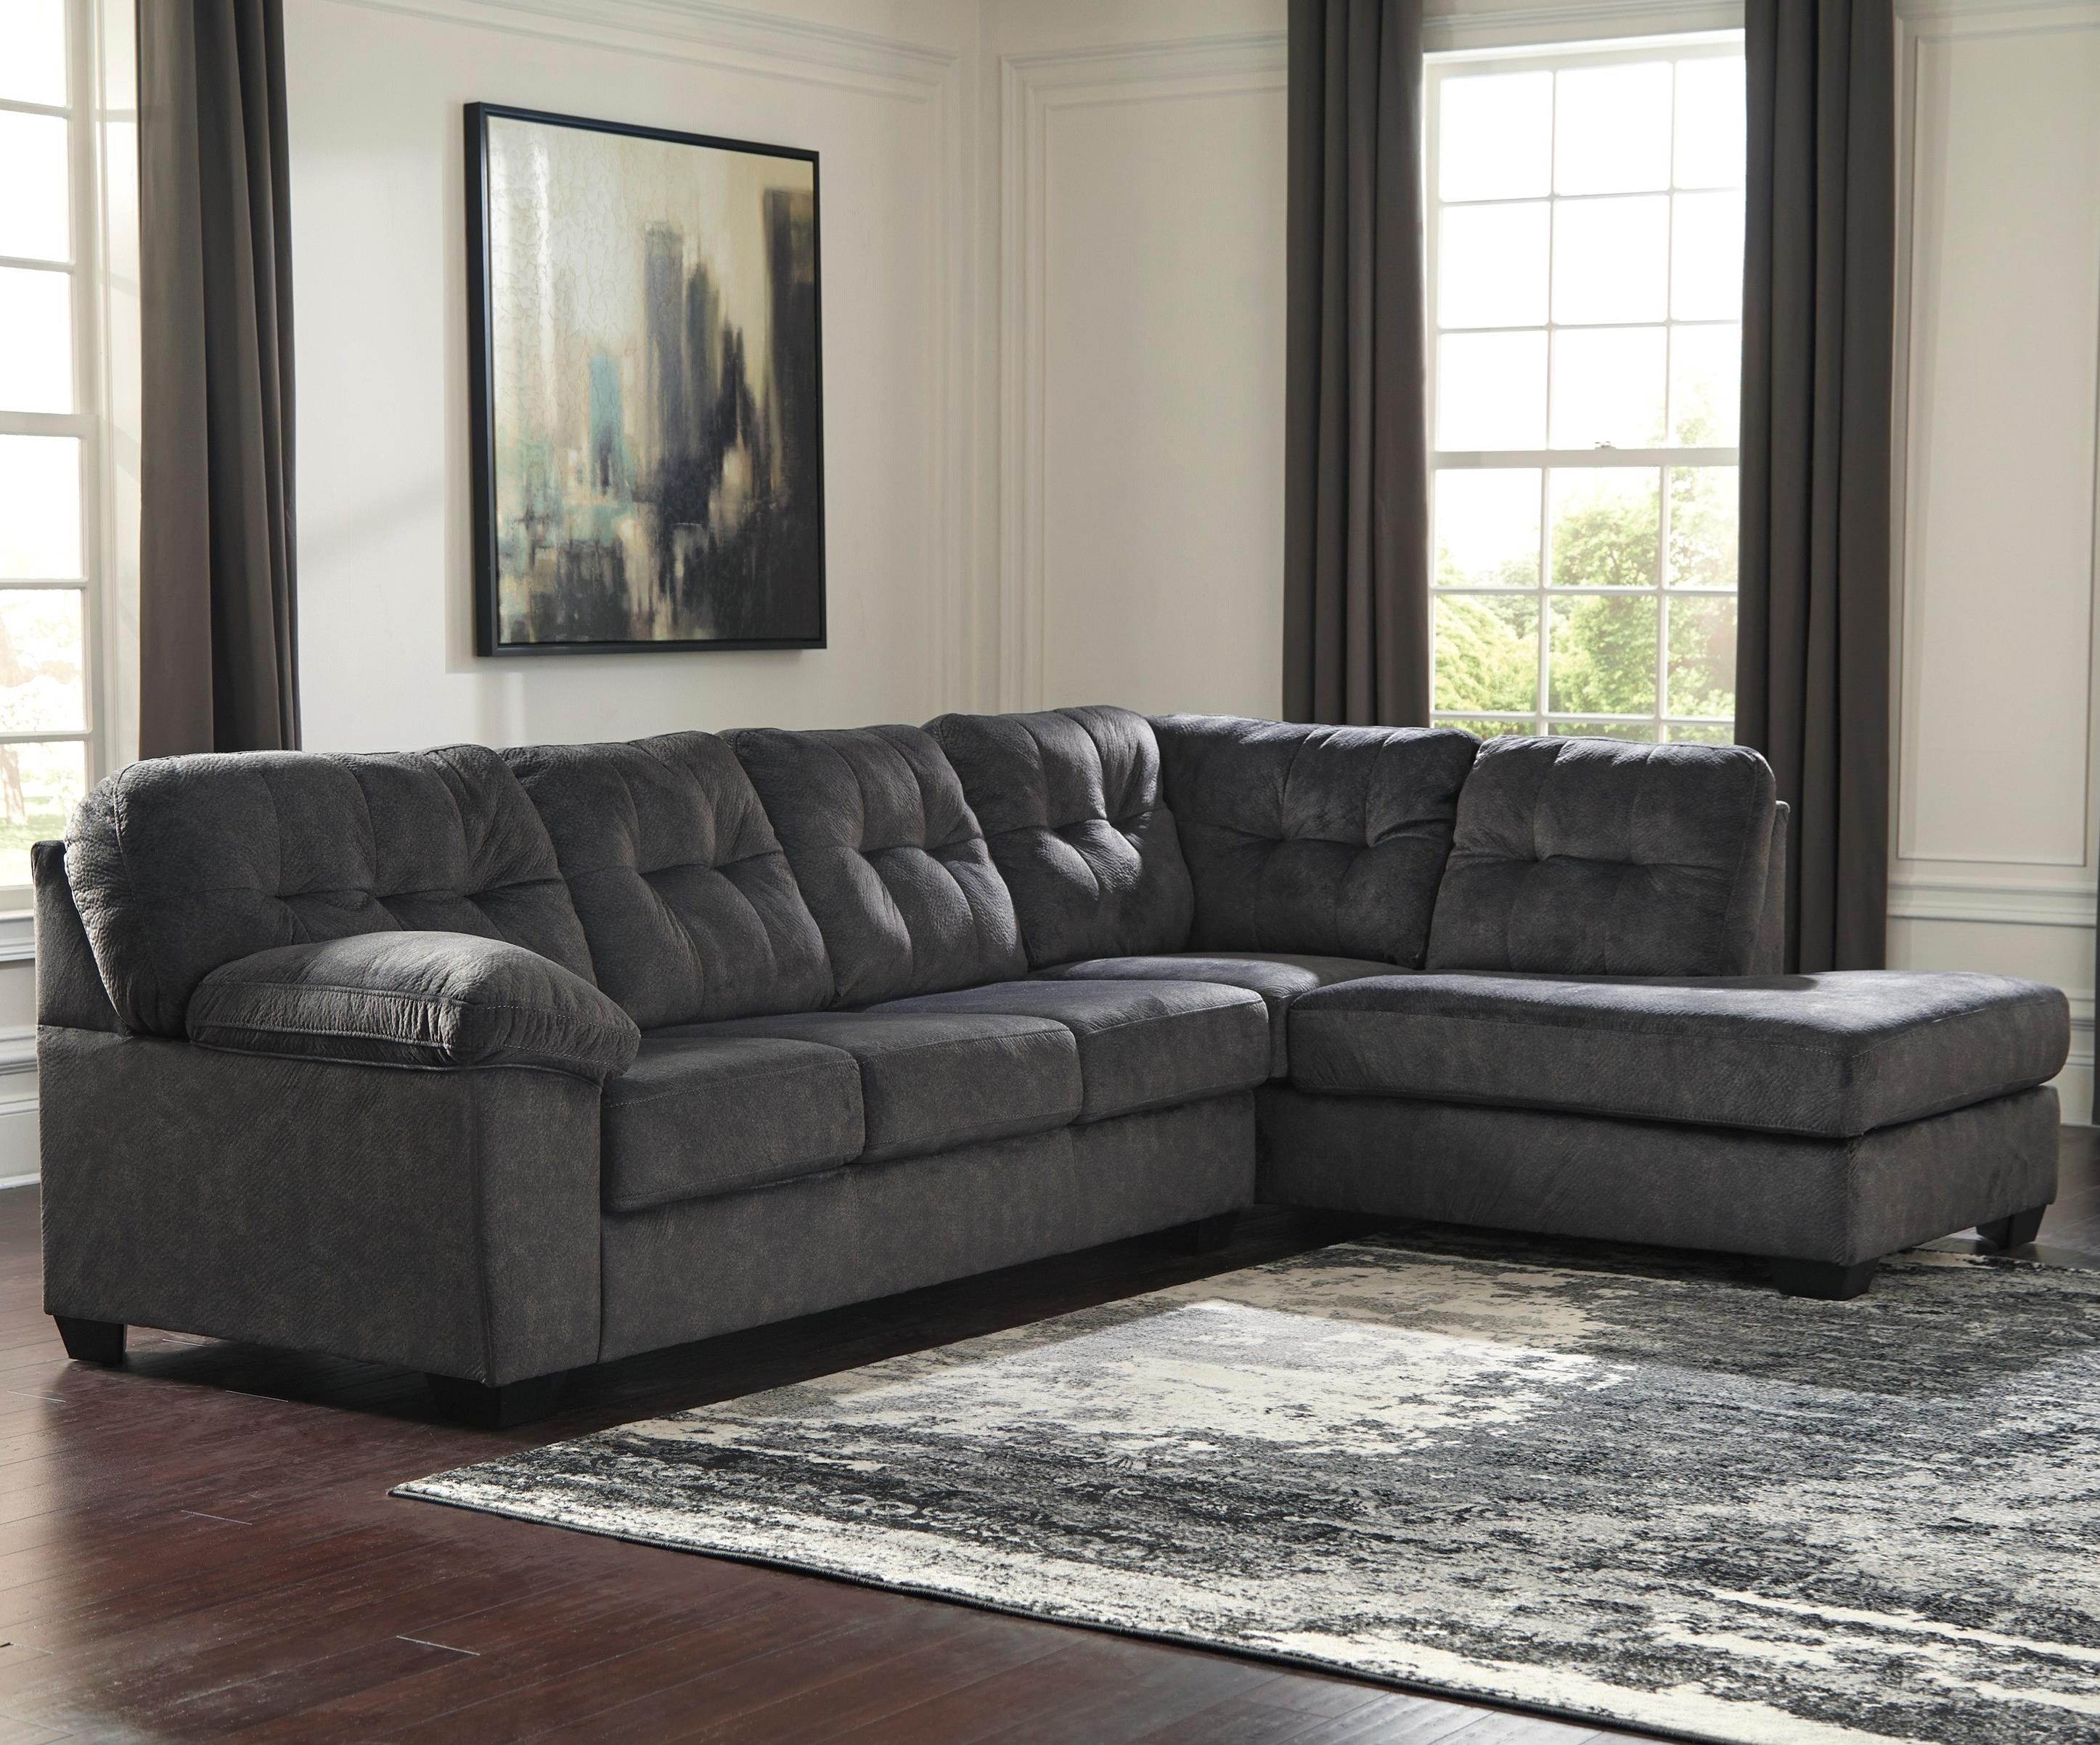 Sectional with Right Chaise & Queen Sleeper